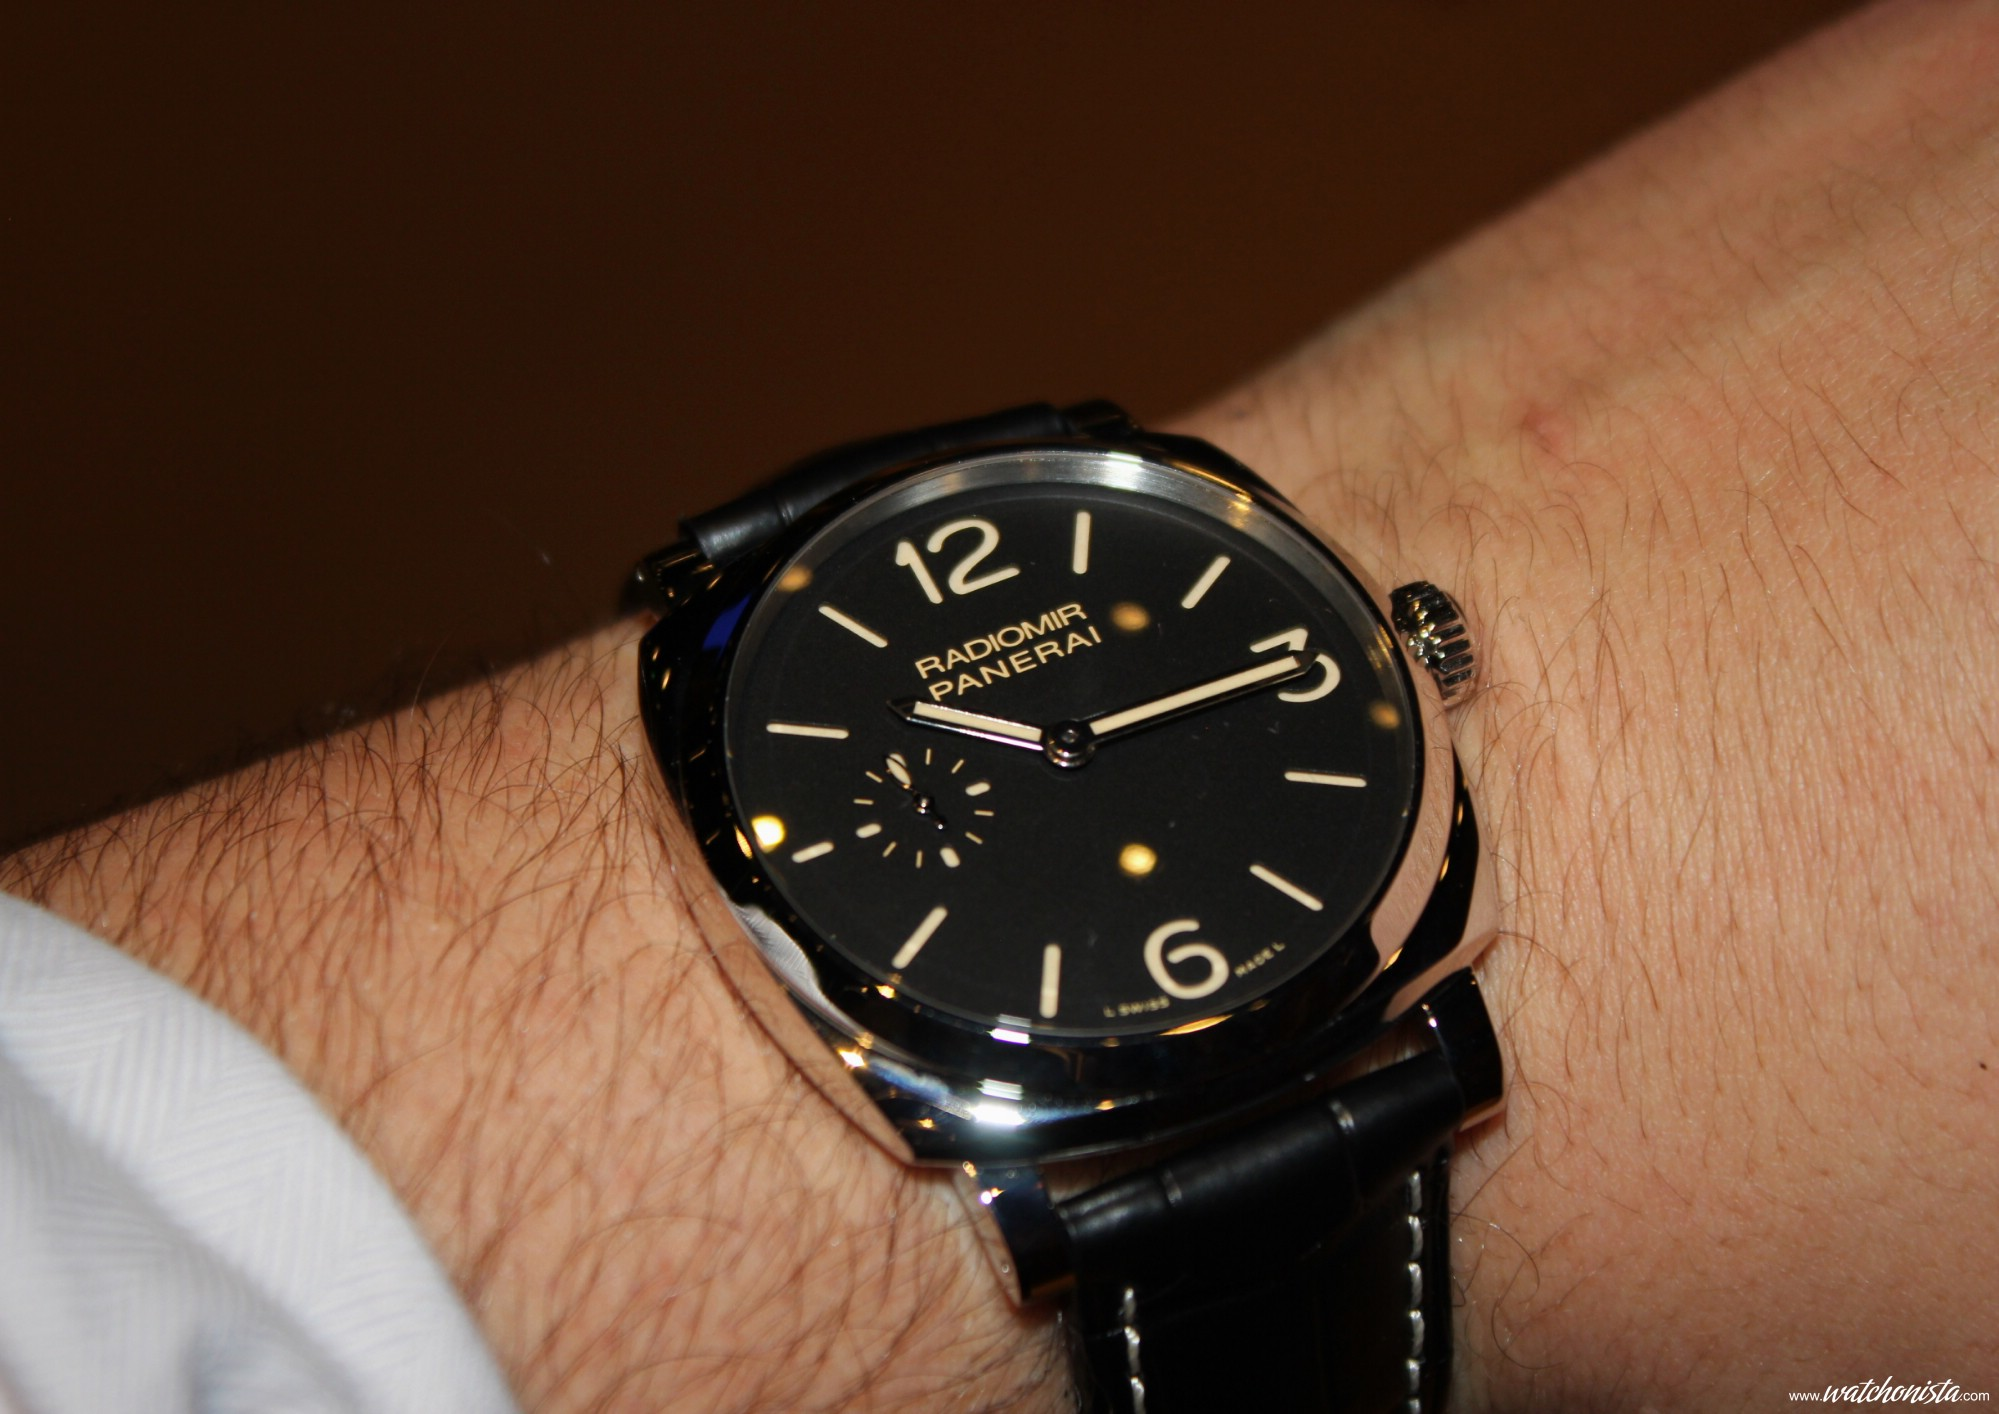 Panerai Sihh2013 Part 1 The Reconstruction Watchonista